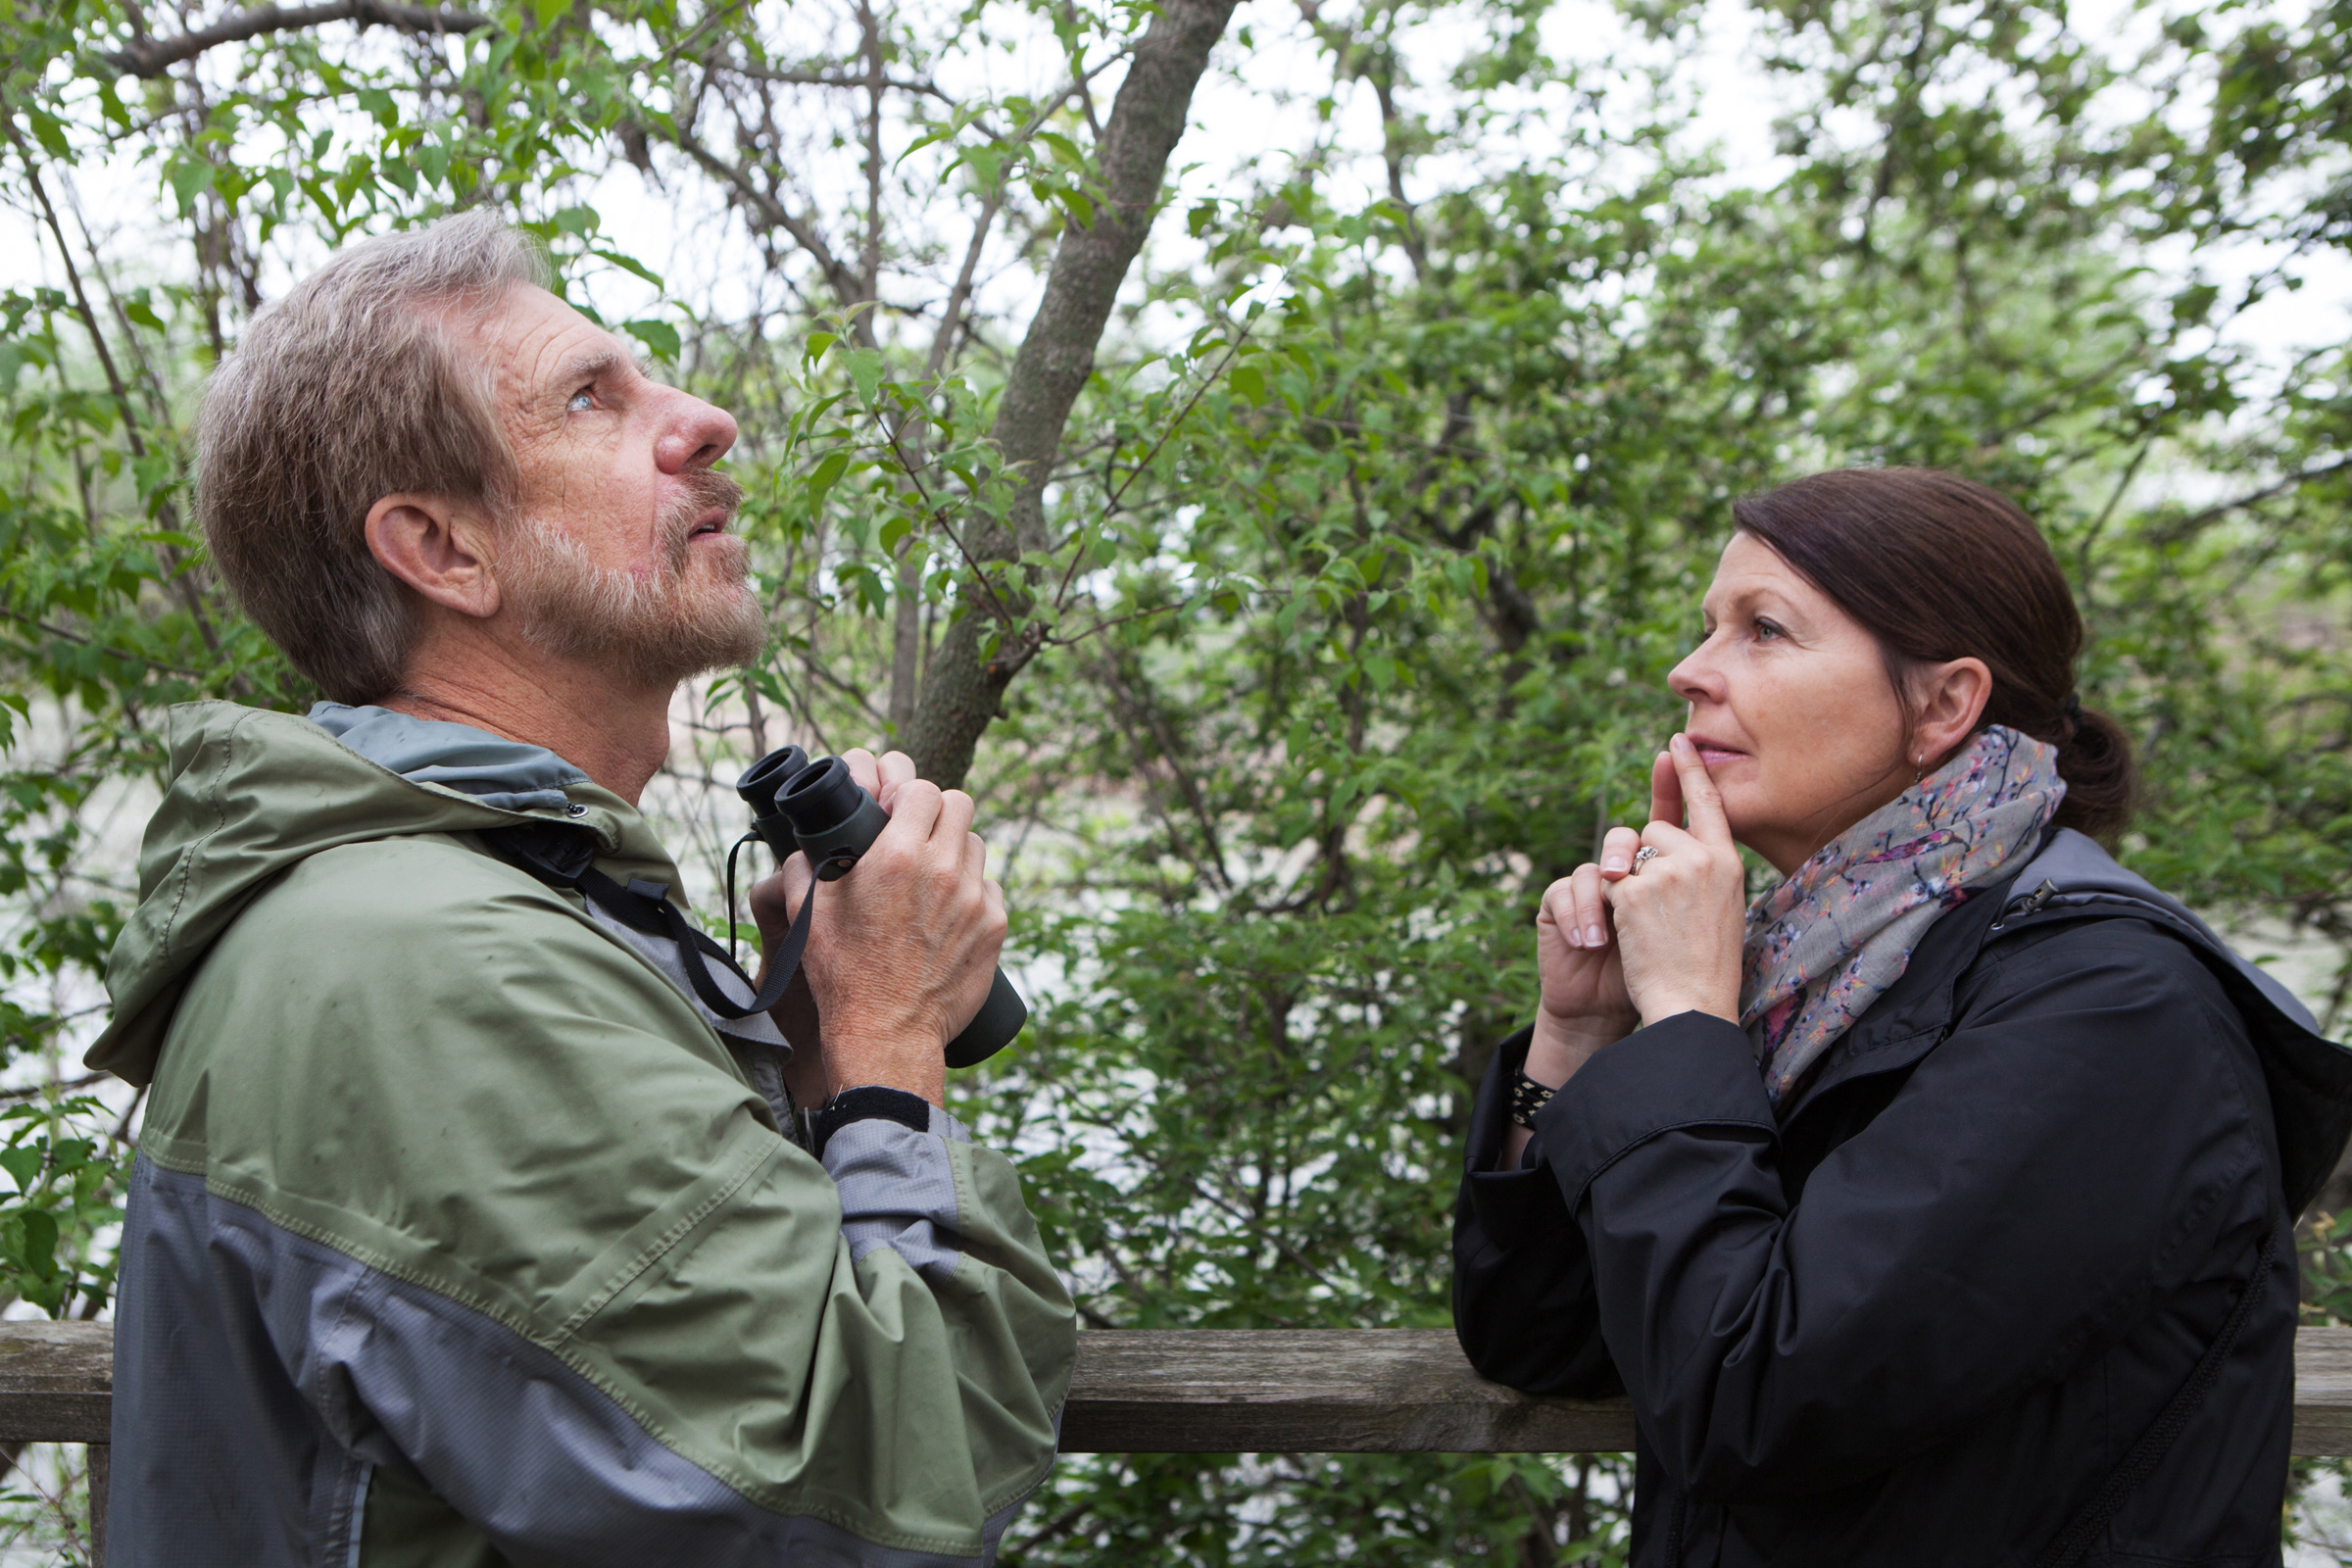 Birding power couple Kenn and Kimberly Kaufman take a break from their busy festival schedules to hit the boardwalk and spy on magnolias (Kim's favorite wood warbler). Camilla Cerea/Audubon